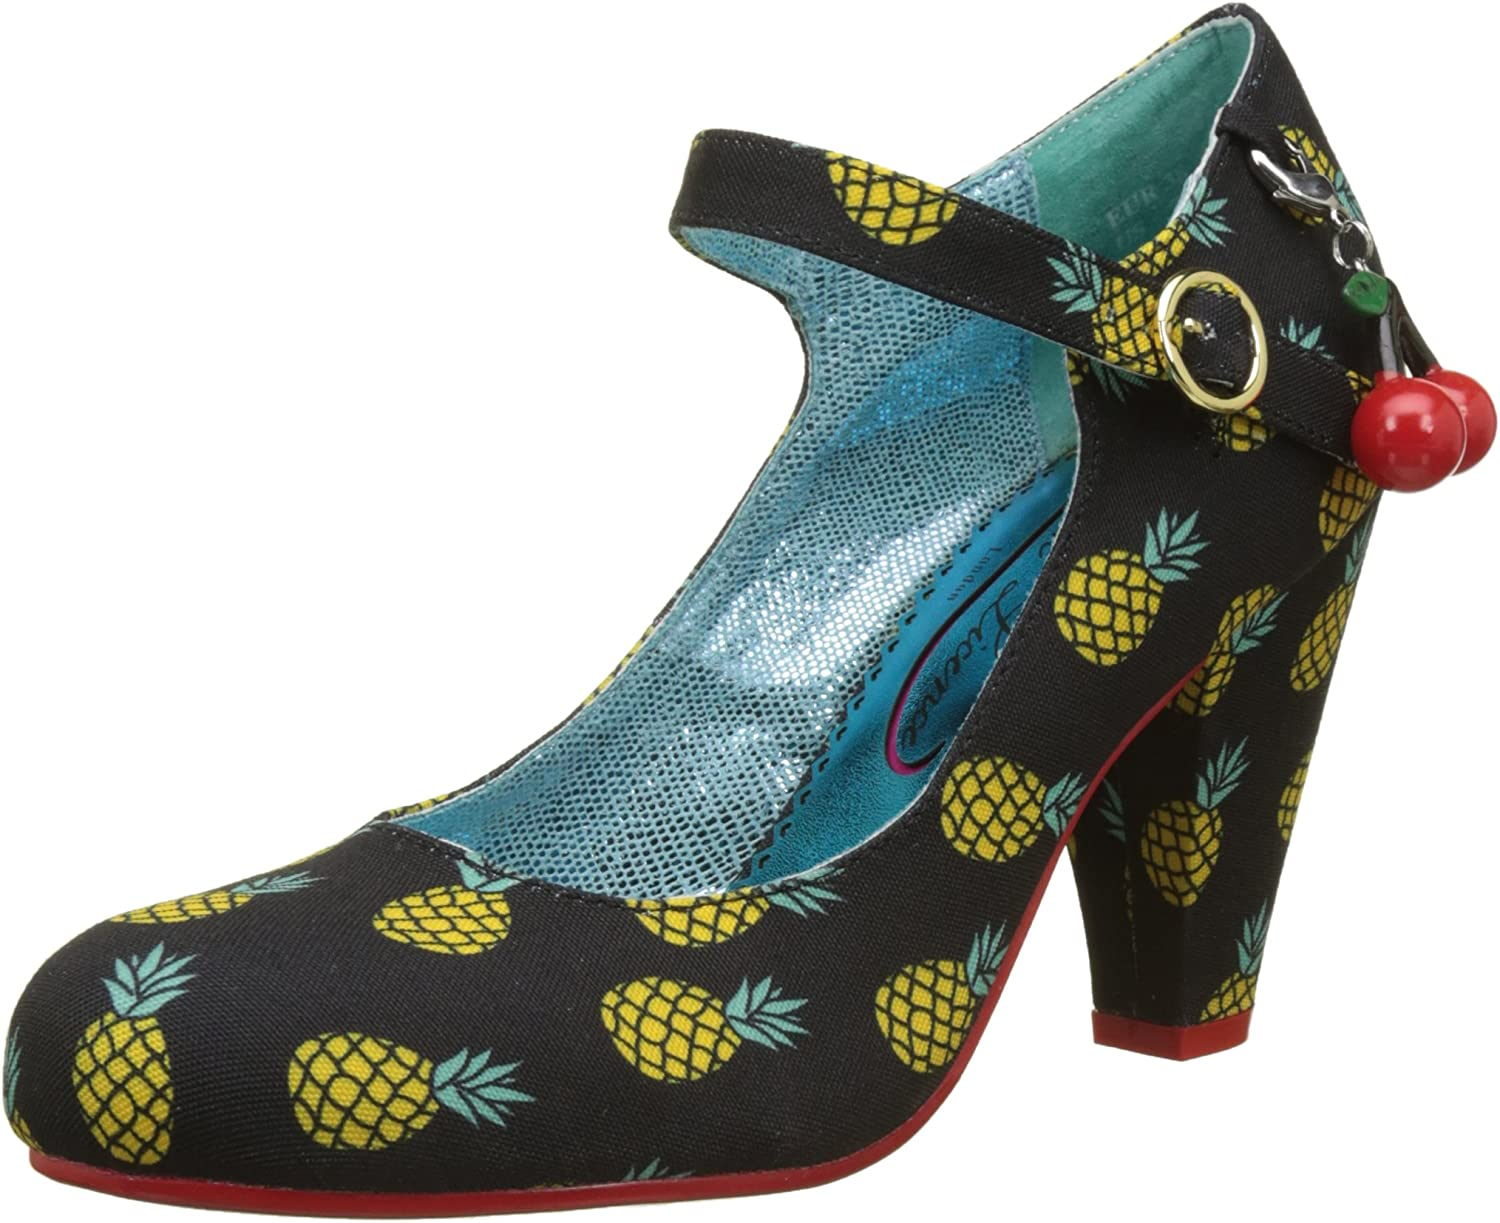 Poetic Licence Irregular Choice Right Stripes Black Yellow shoes Heel Size